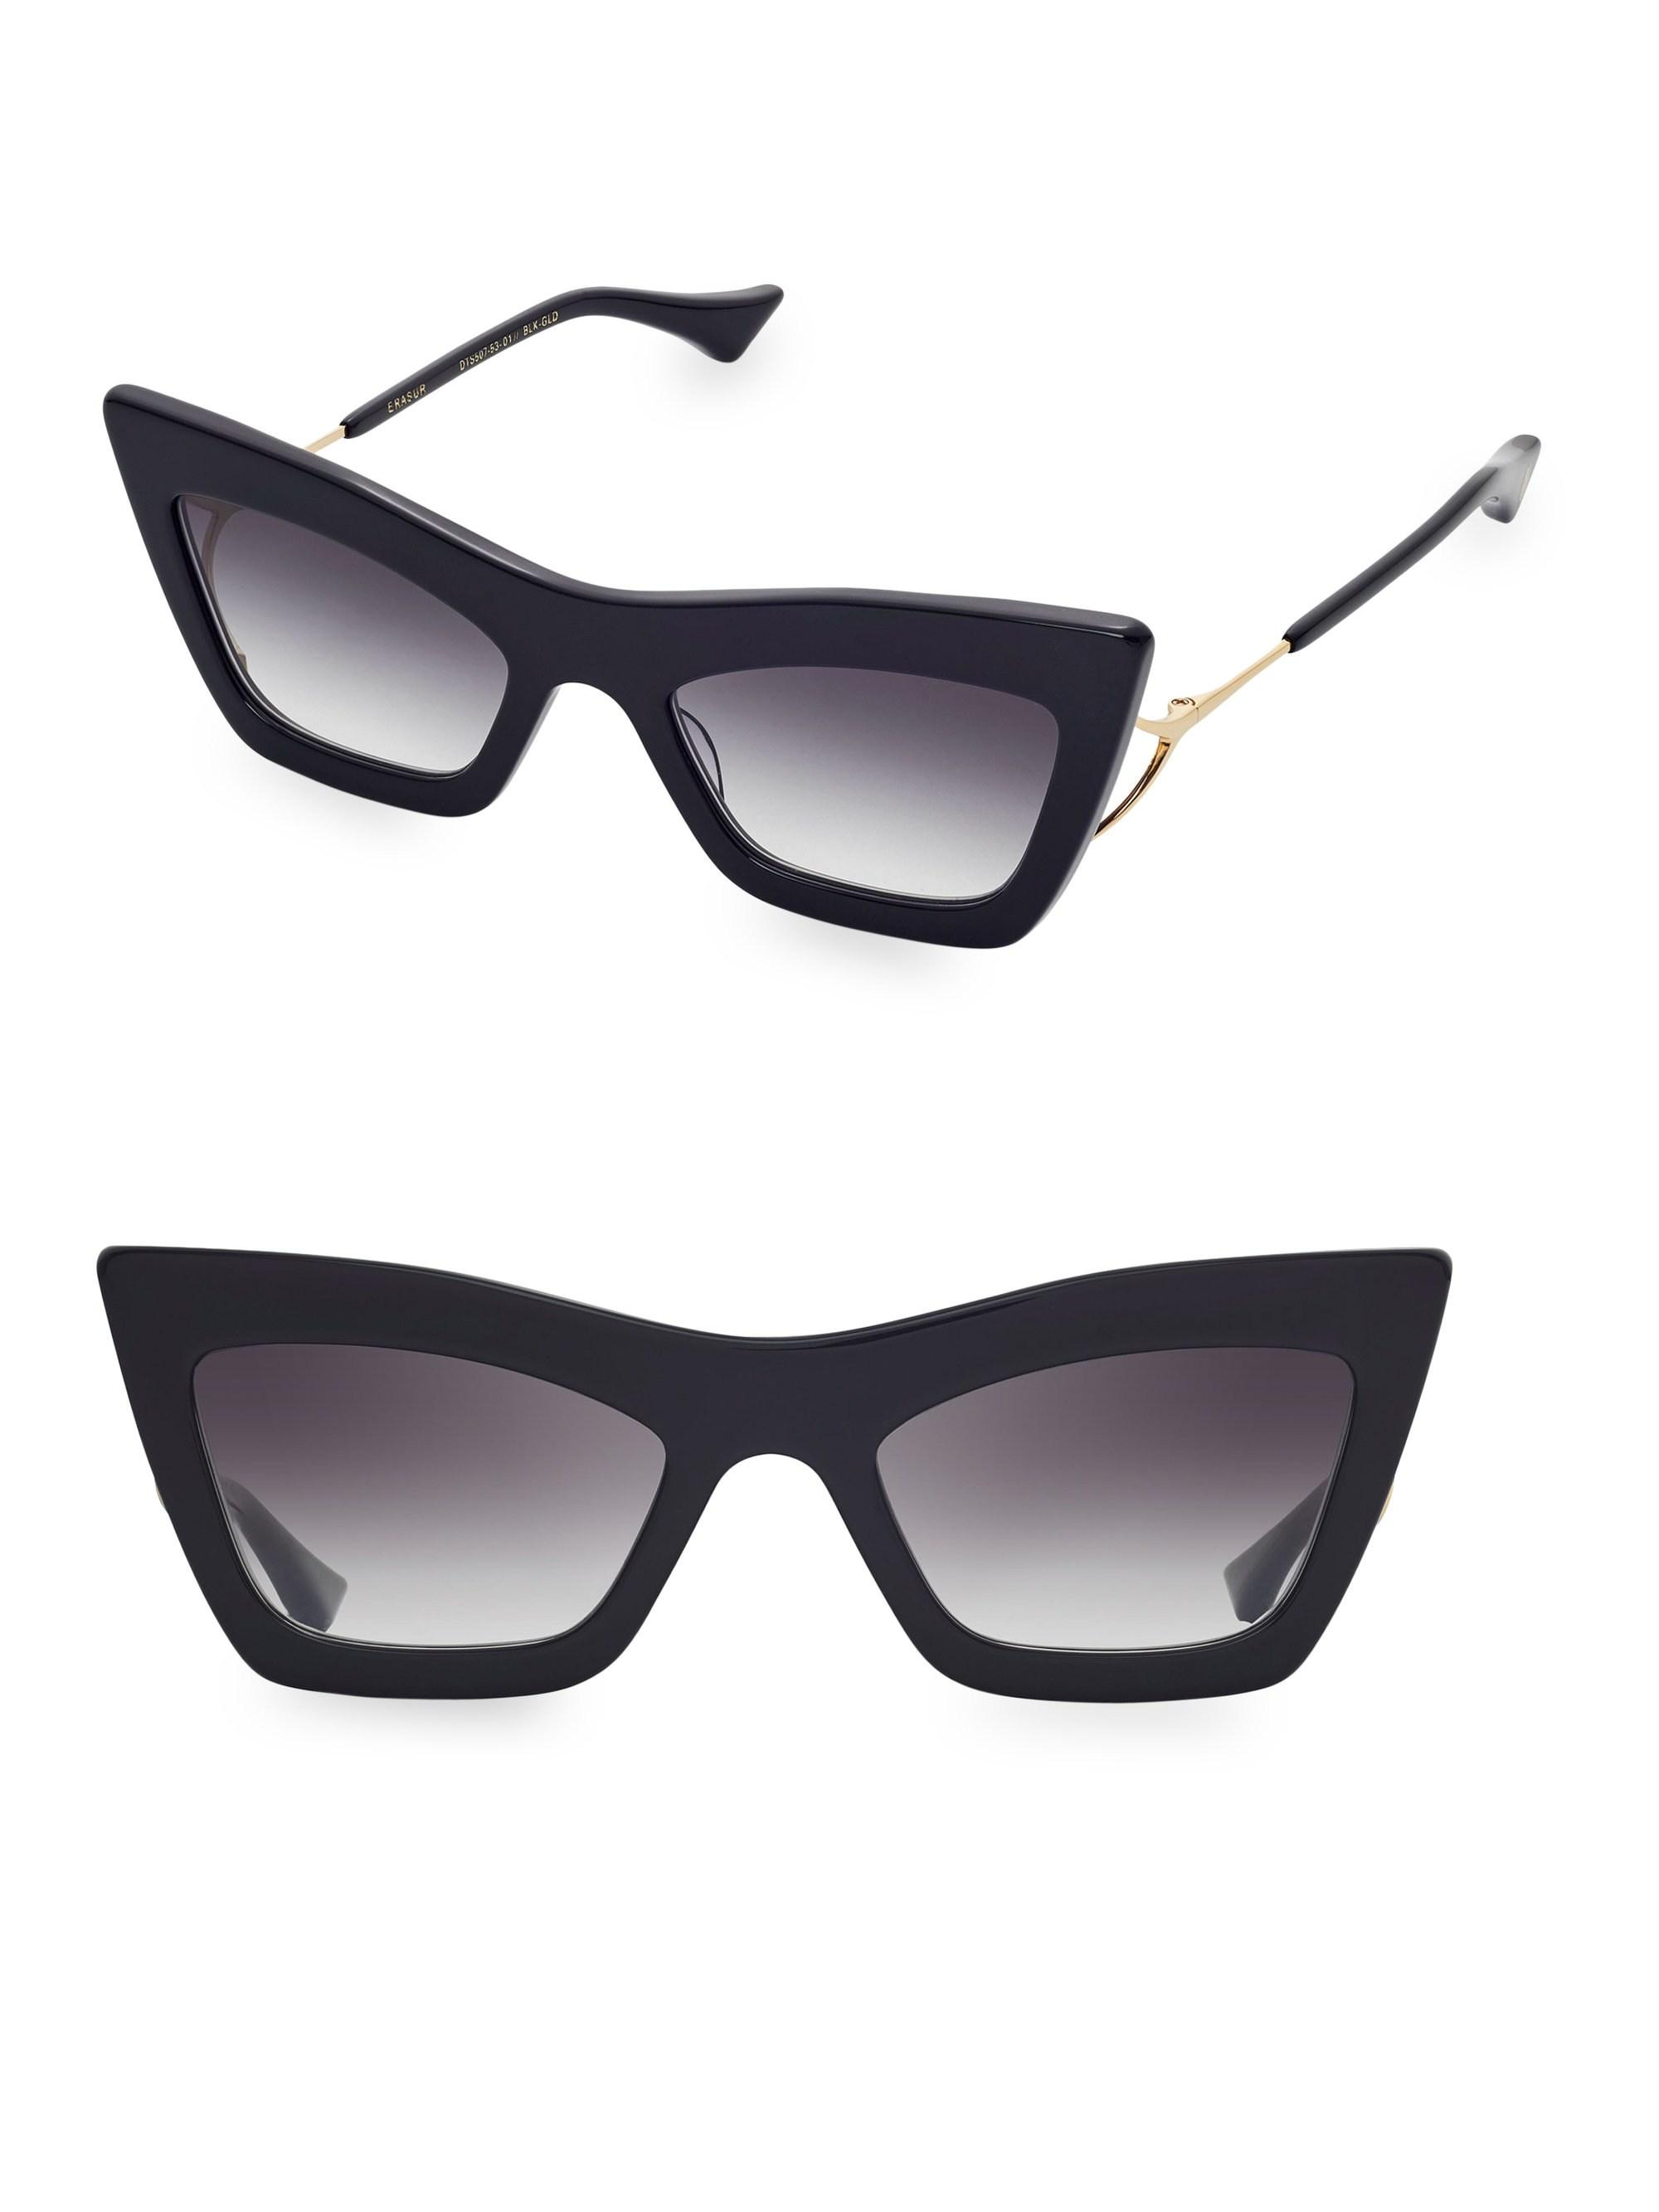 38ae0121989 Lyst - Dita Eyewear Erasur 53mm Cat-eye Sunglasses in Black